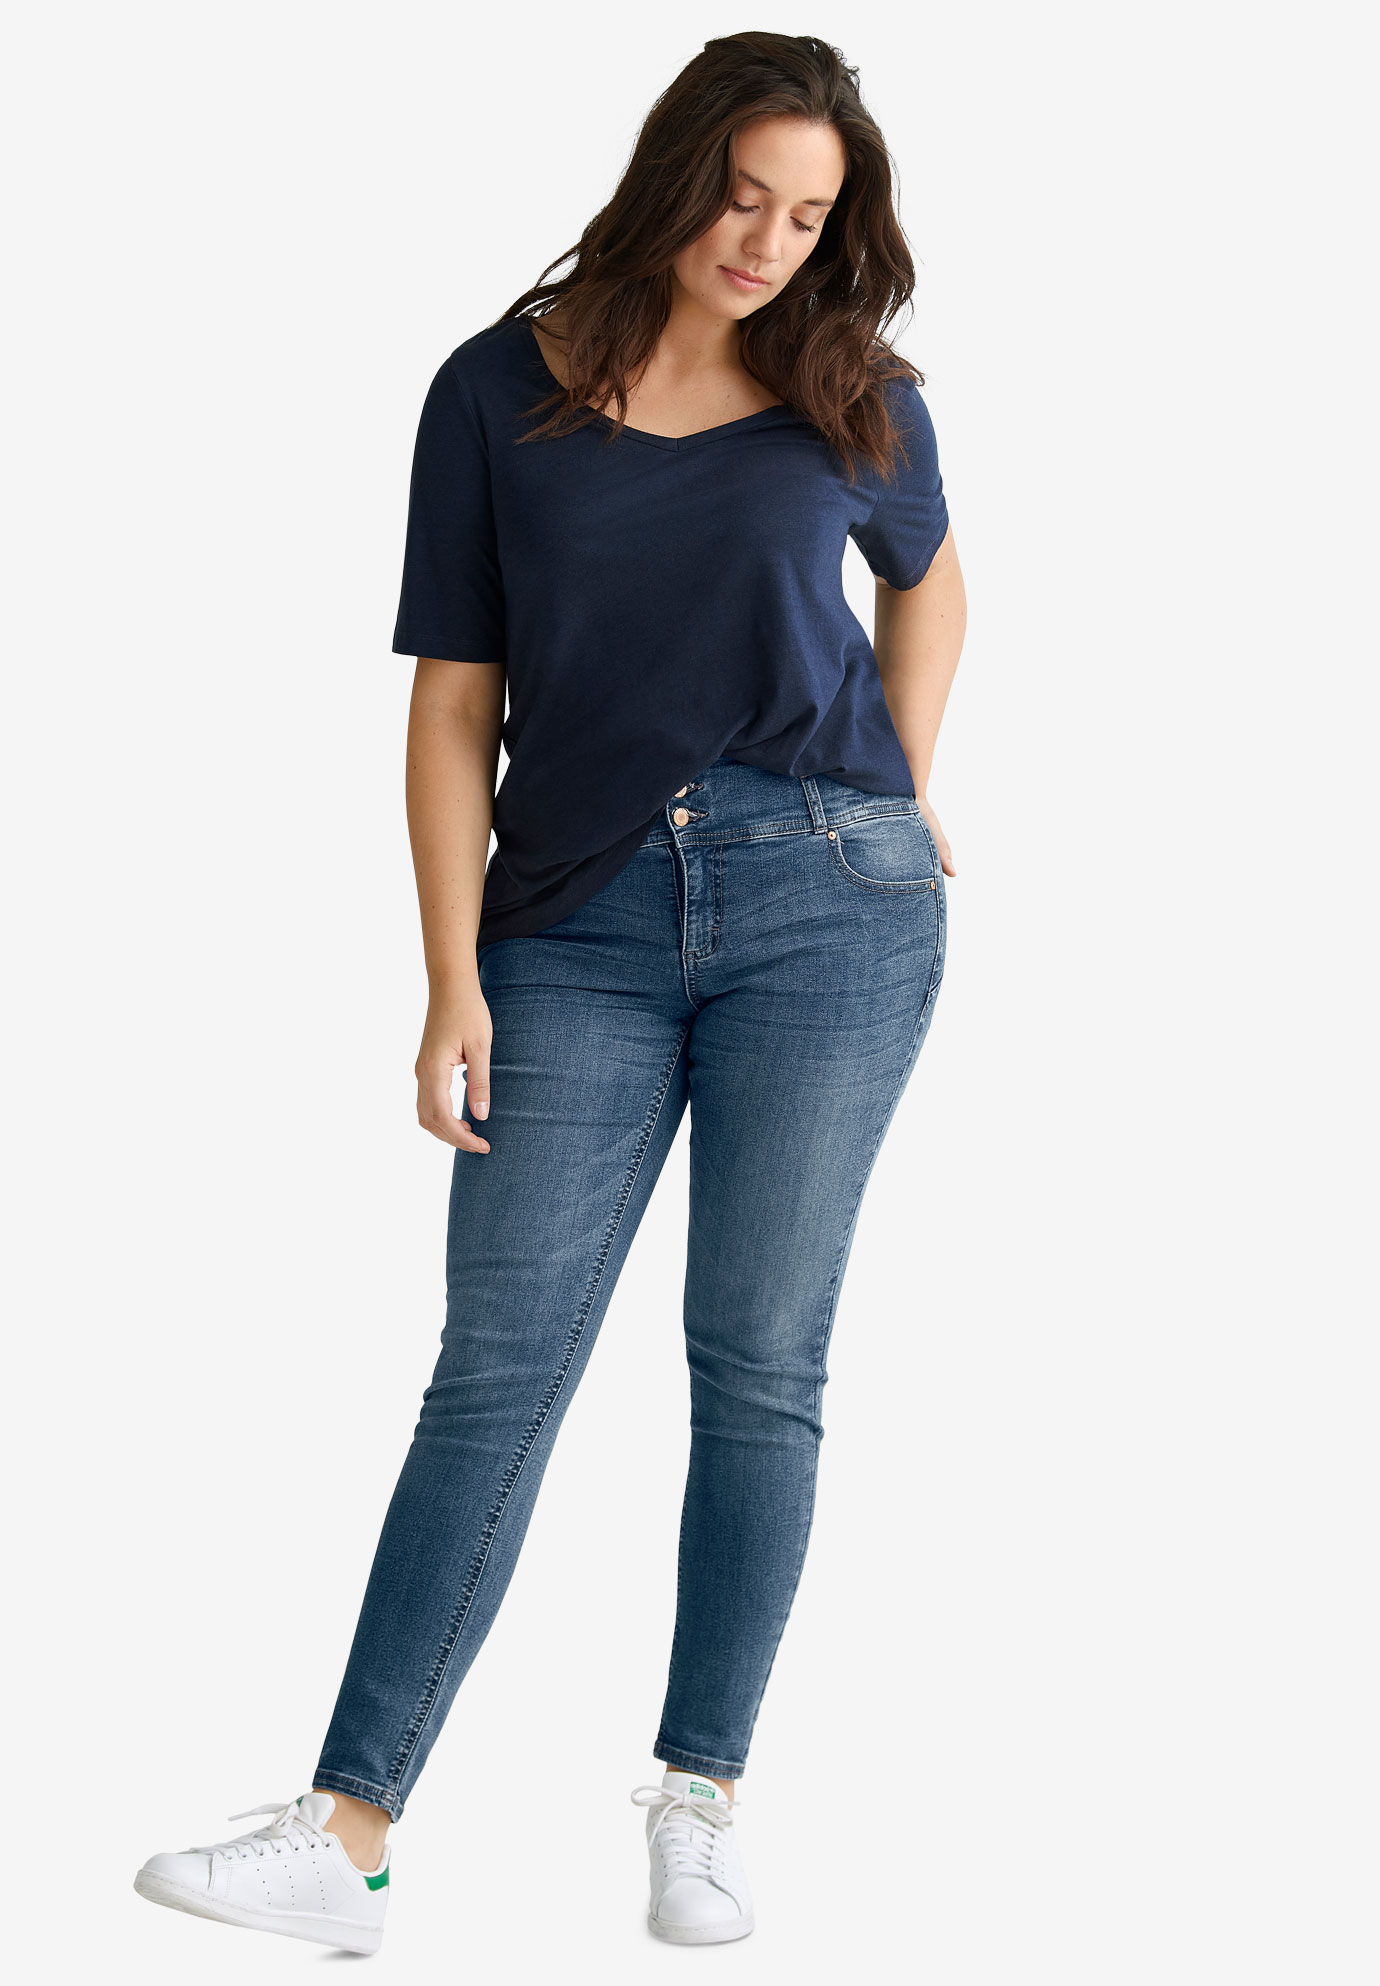 9db1e2b864b4 Skinny High Waist Shaping Jeans by ellos®| Plus Size Jeans | Ellos